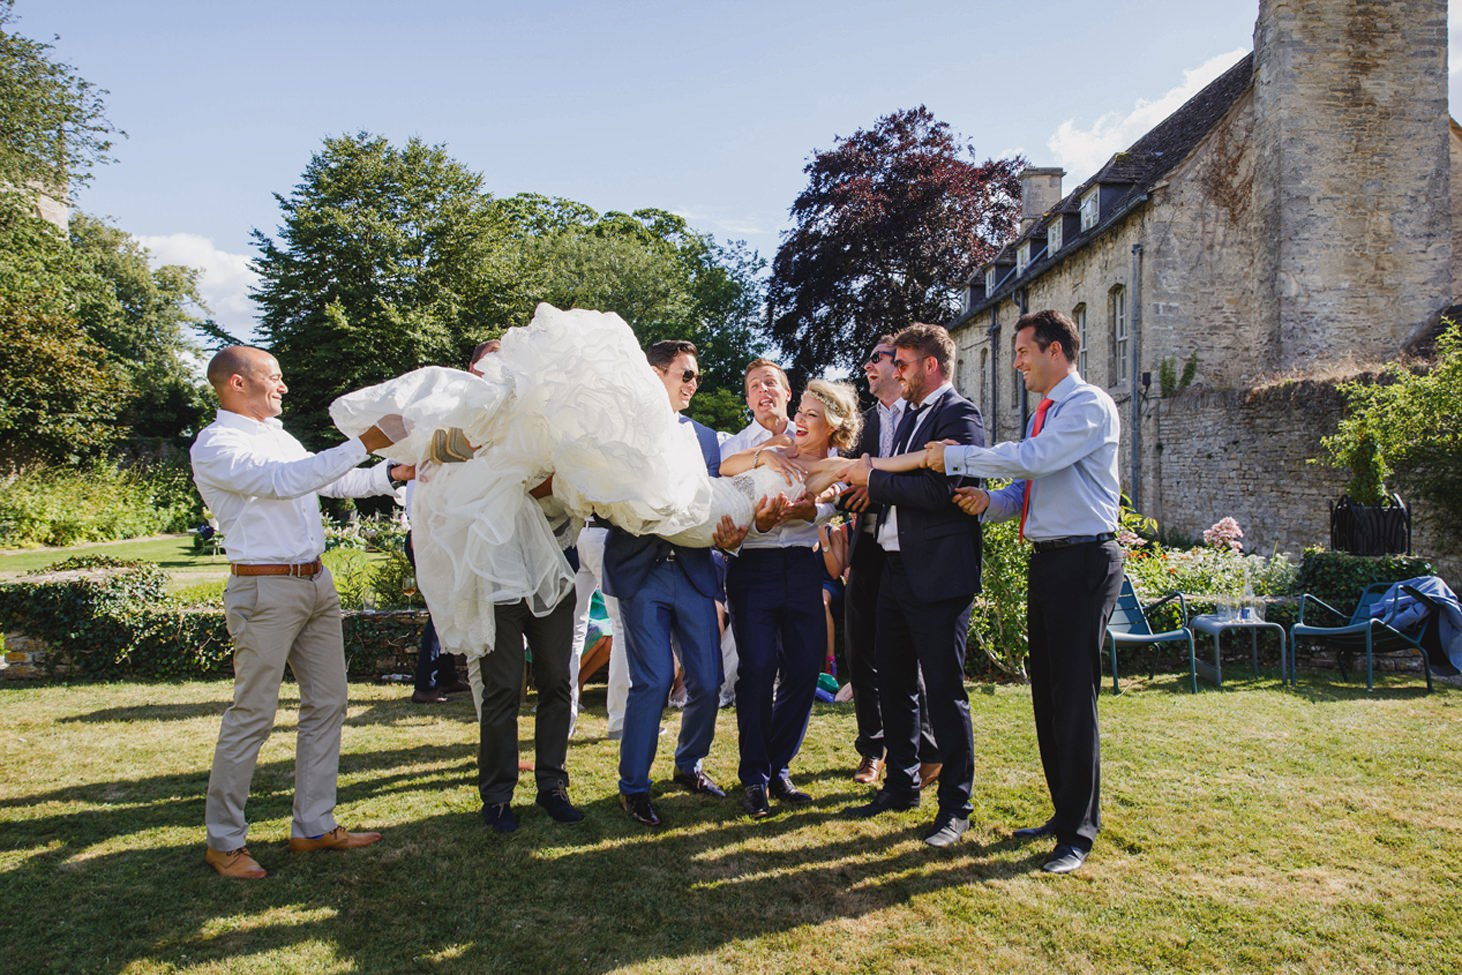 The Rectory Hotel Crudwell guests lifting bride